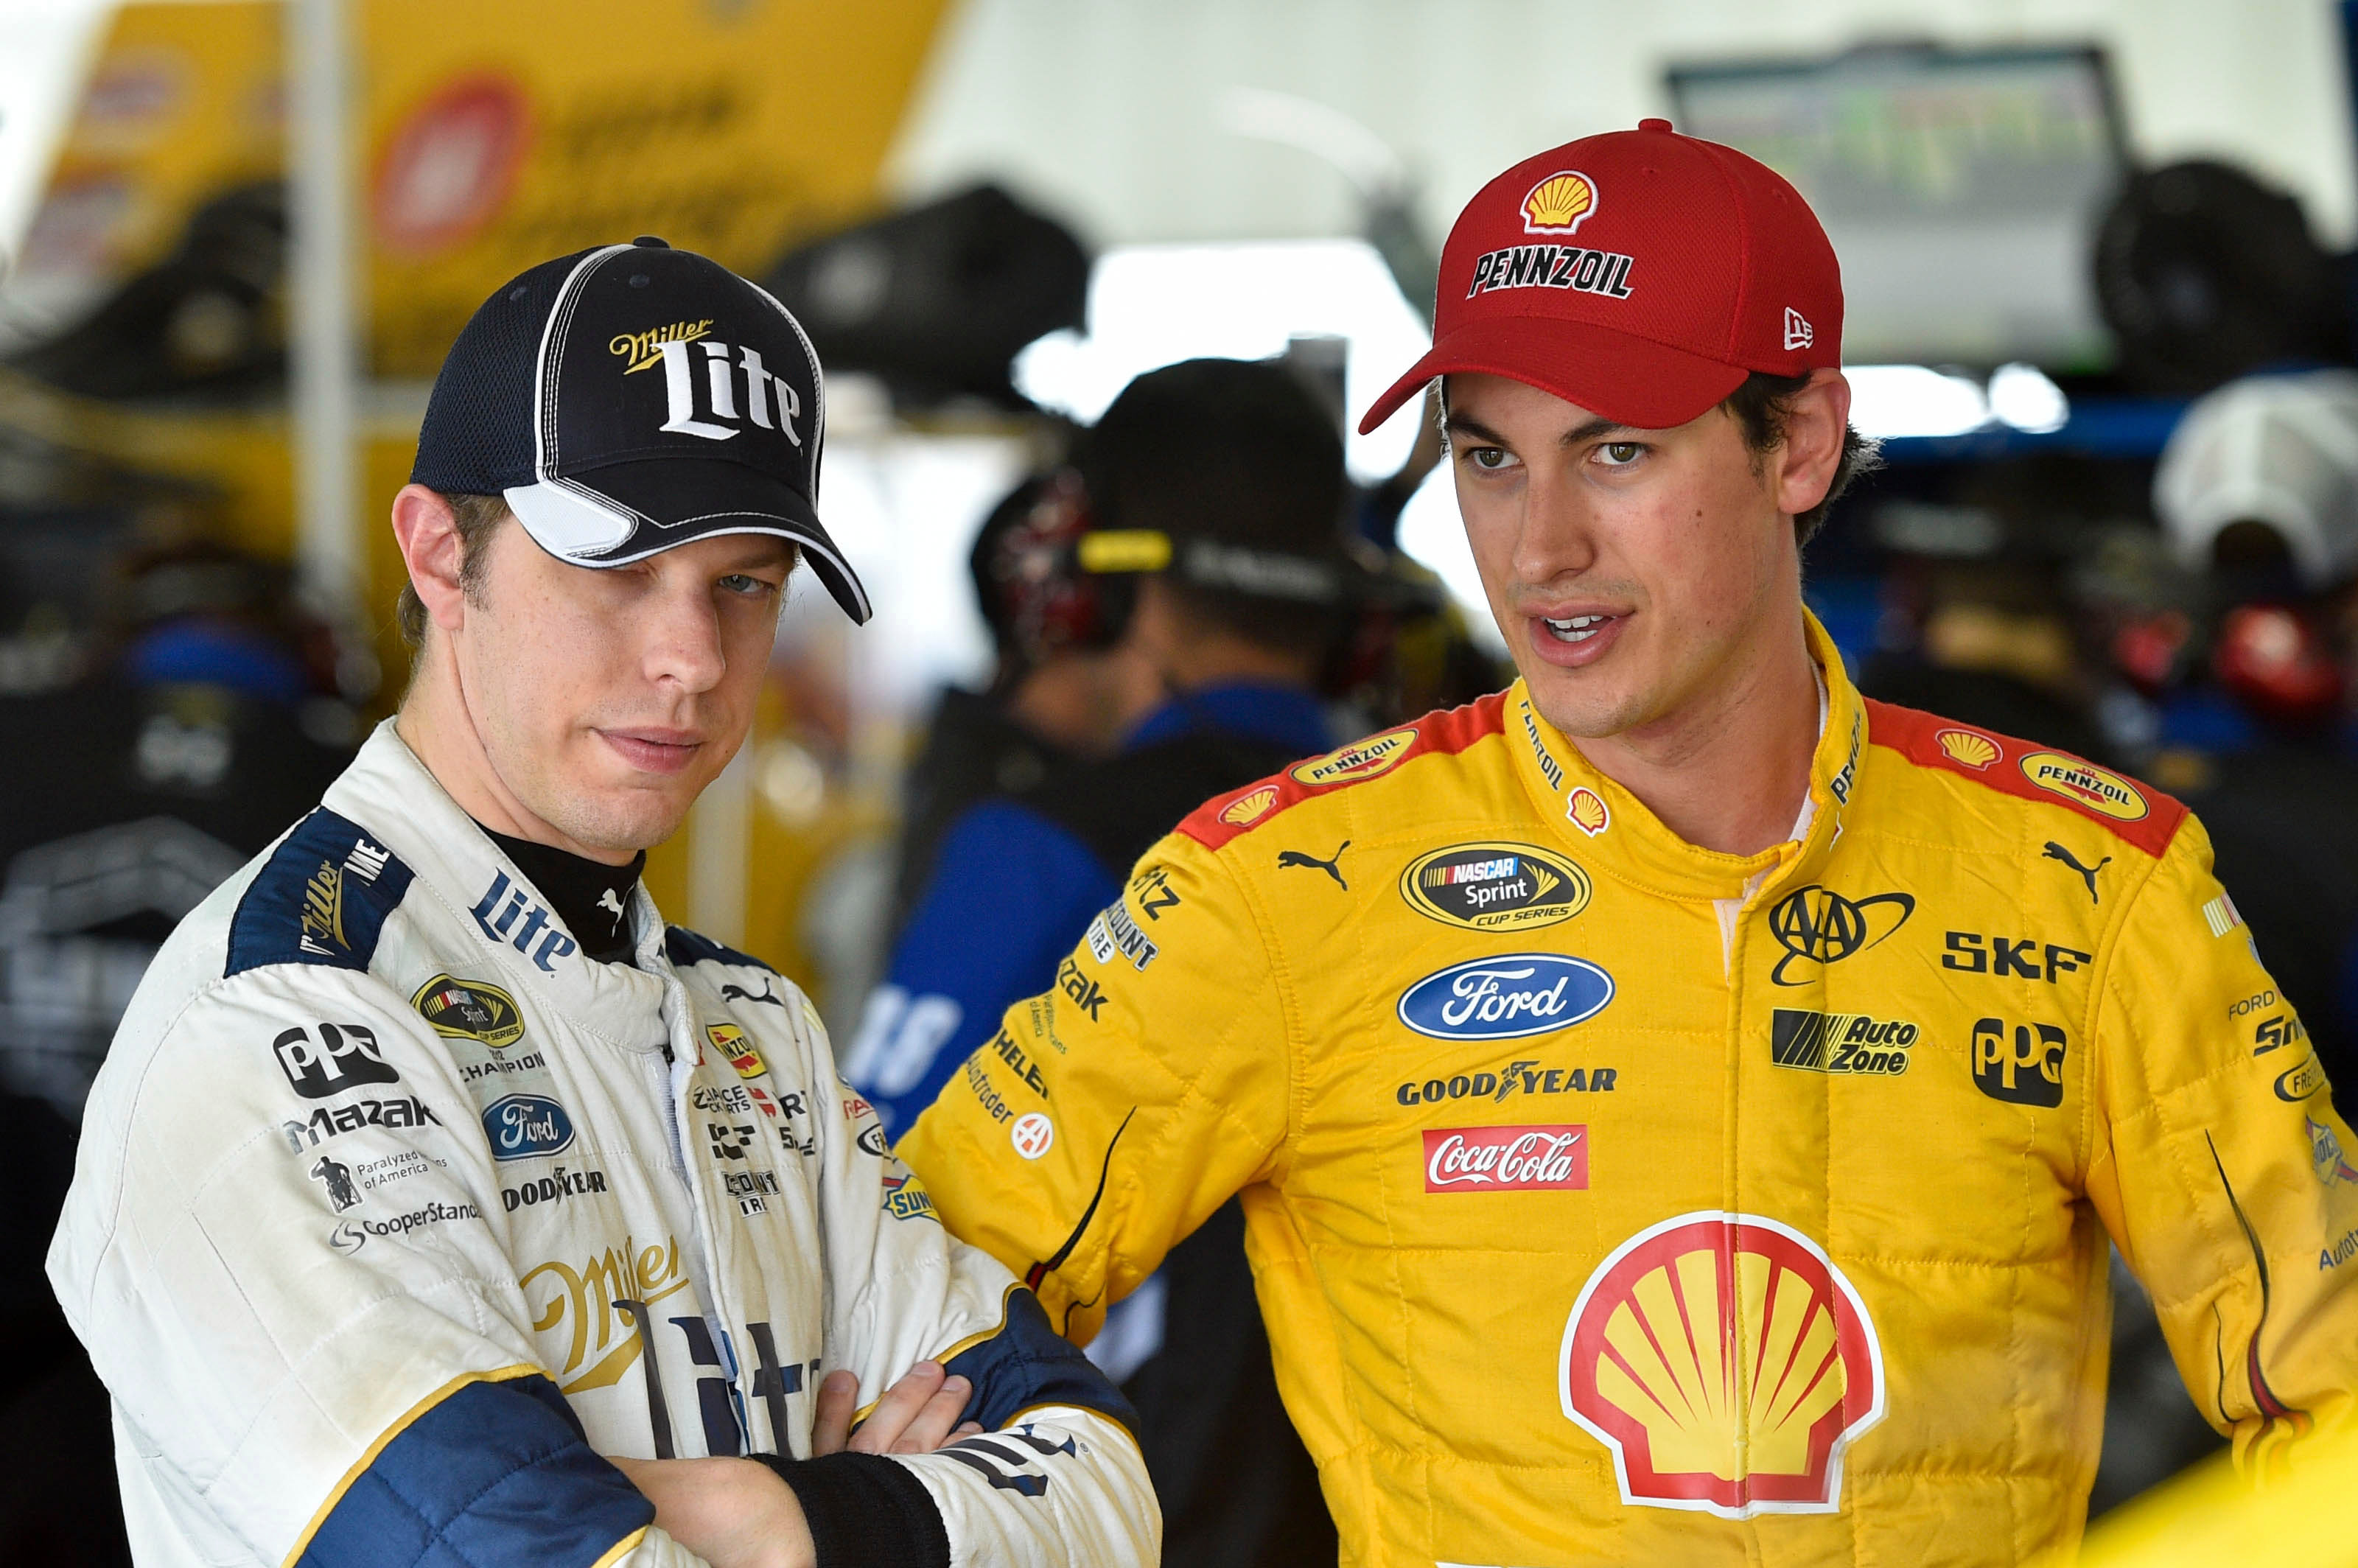 Logano: Brad and I need to find a way forward